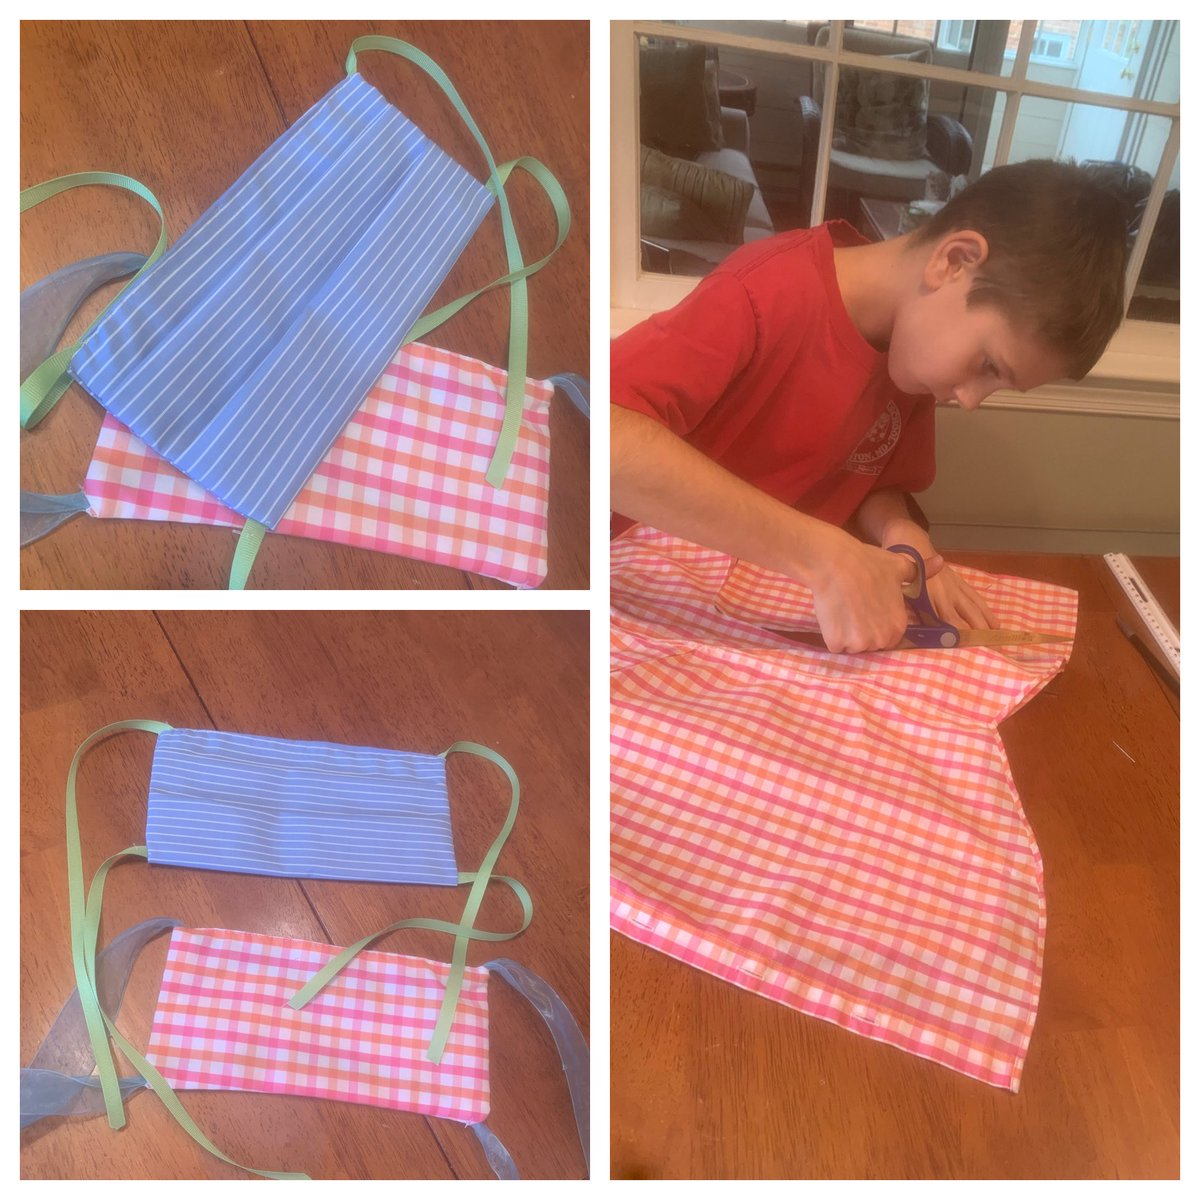 """Afternoon project with my son making 😷. It is """"sew"""" hard to do by hand 🤣but fun and passes the time@with a kid who is """"next level bored""""."""